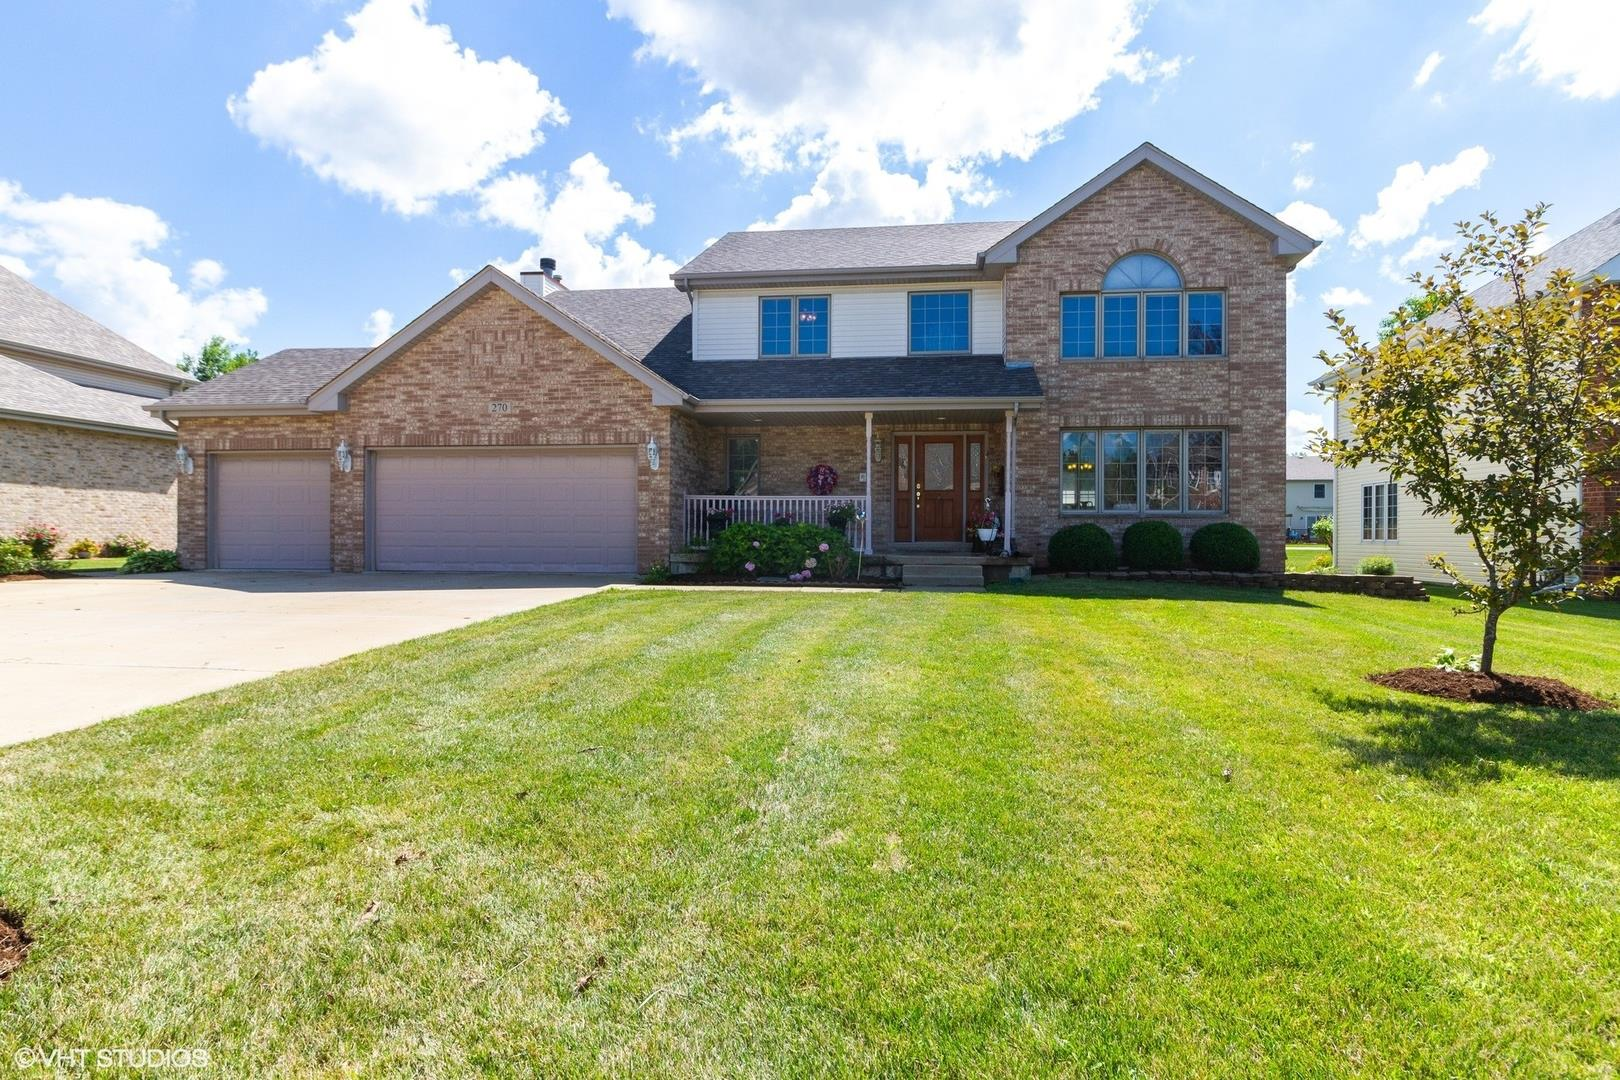 270 Barrington Drive, Bourbonnais, IL 60914 - #: 10919214